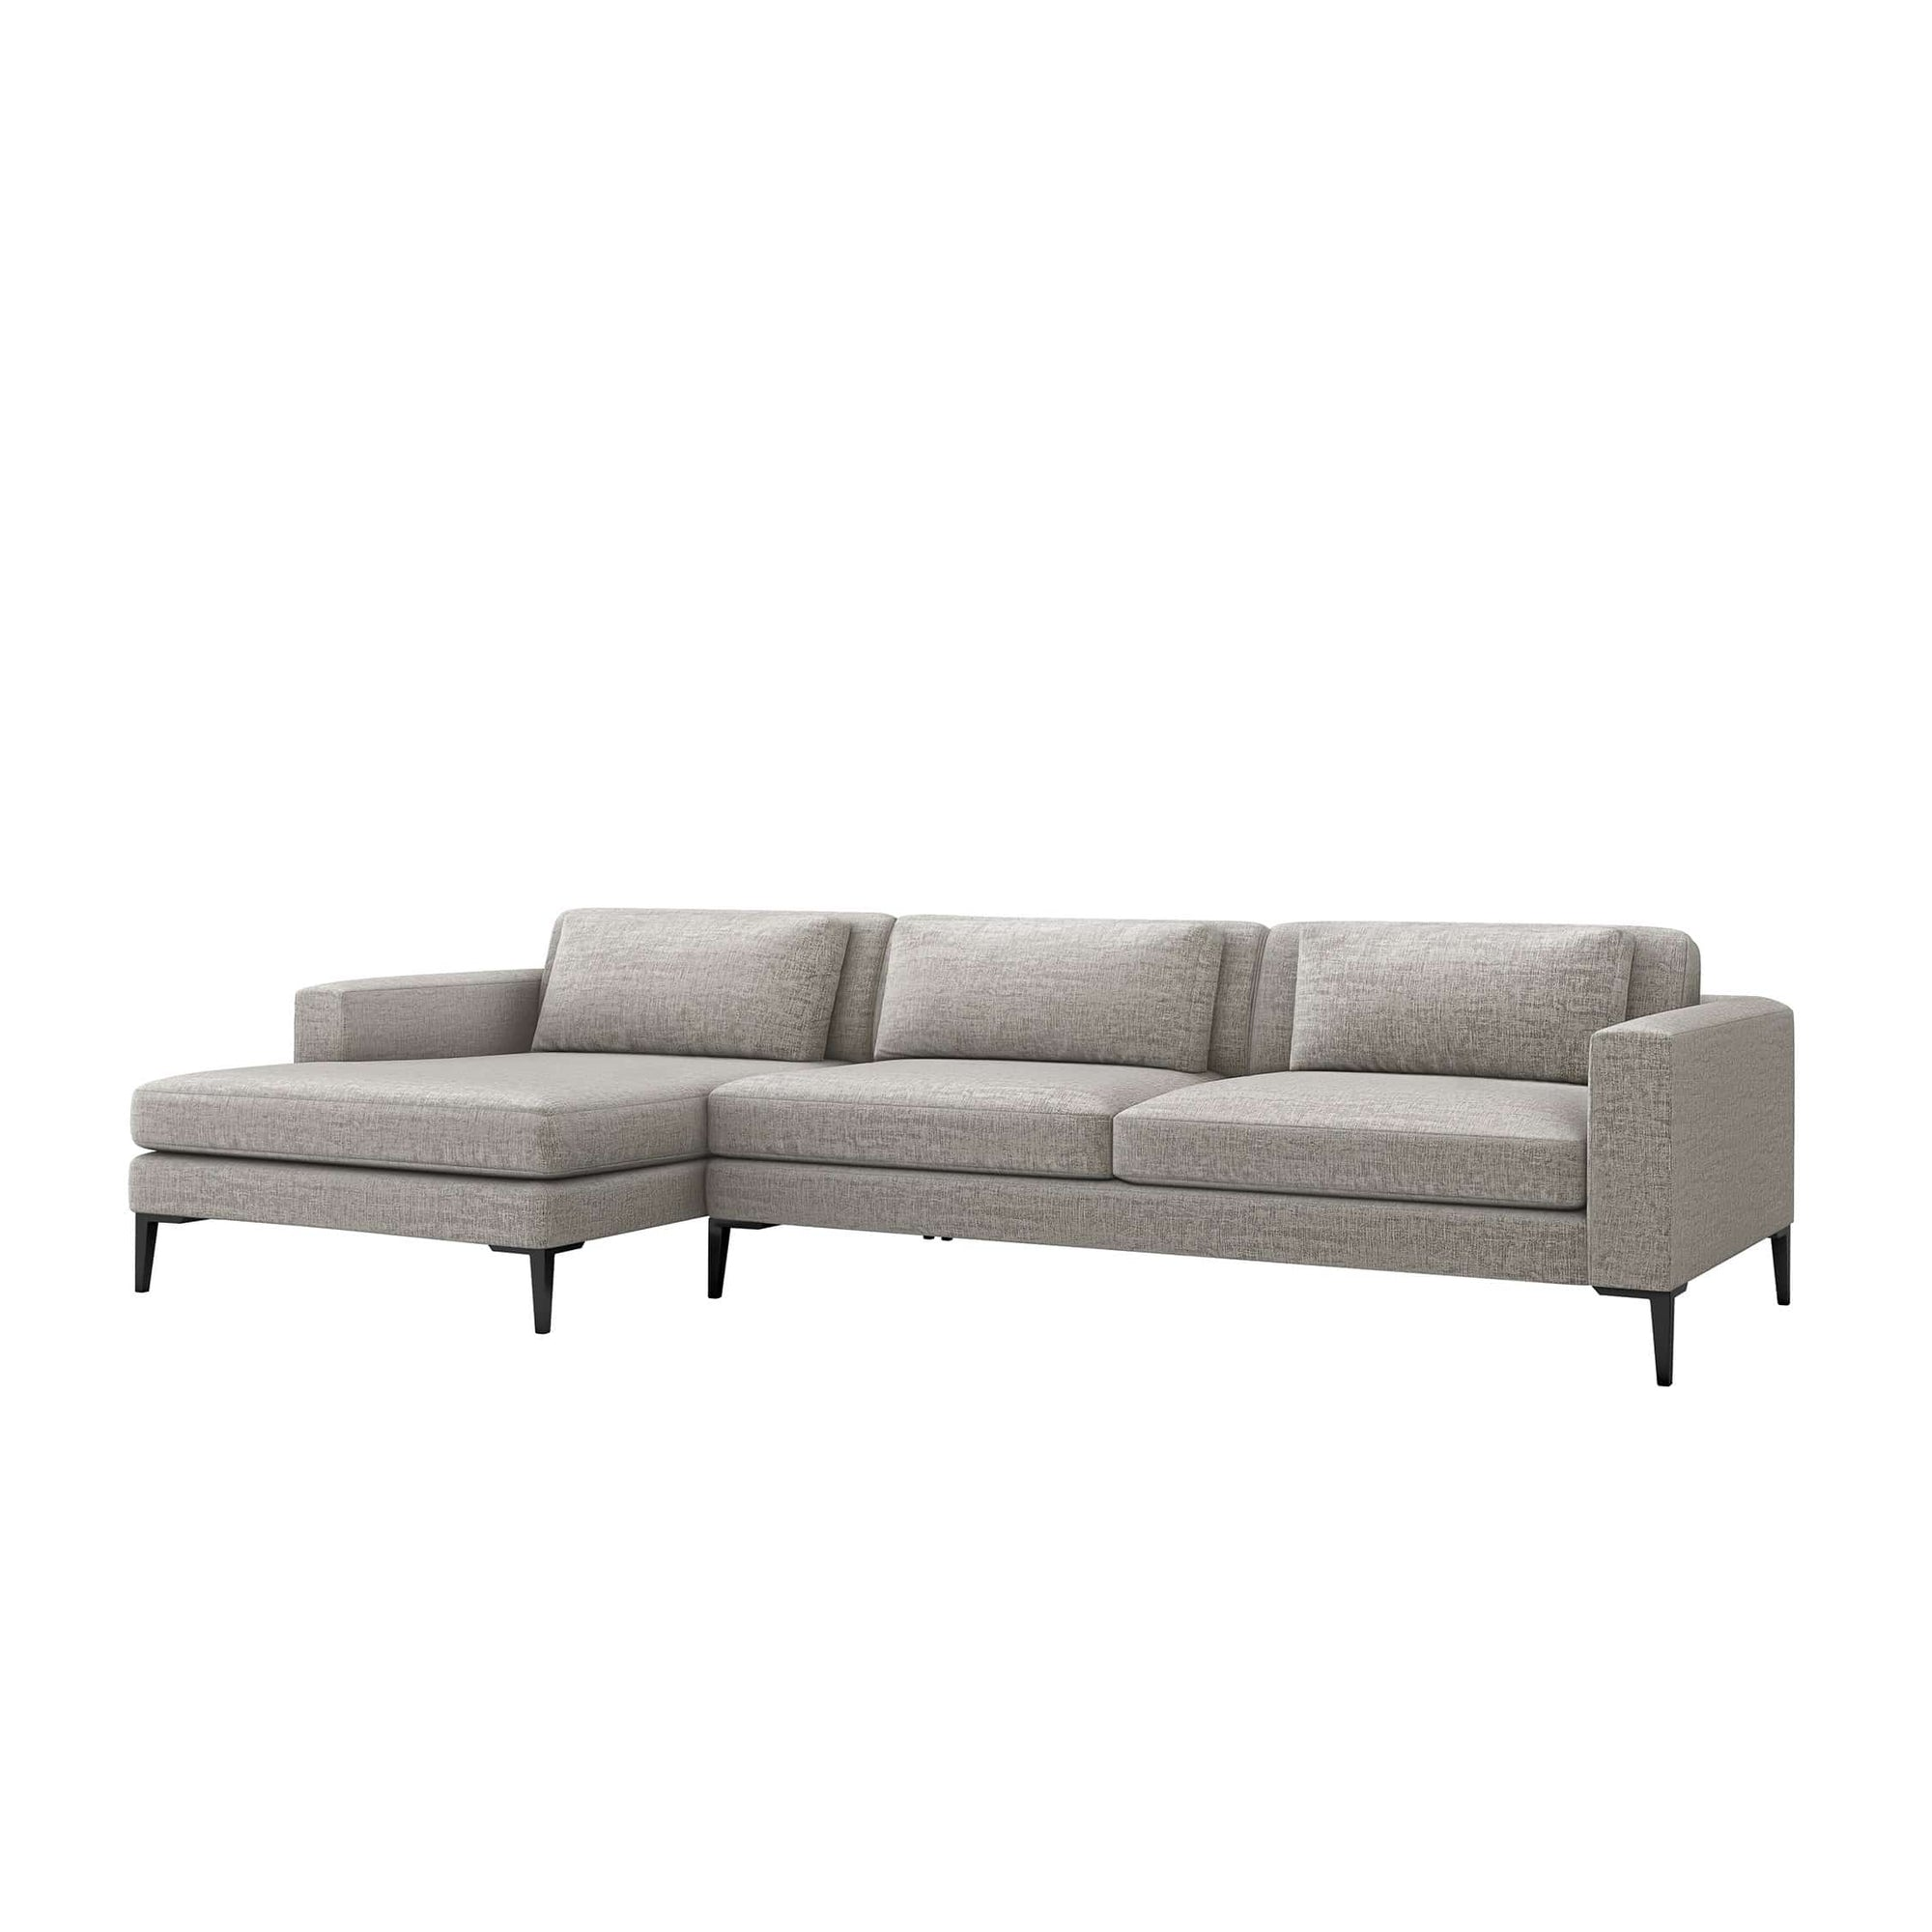 Interlude Home Interlude Home Izzy Left Chaise 2 Piece Sectional - Feather Gray 199015-4